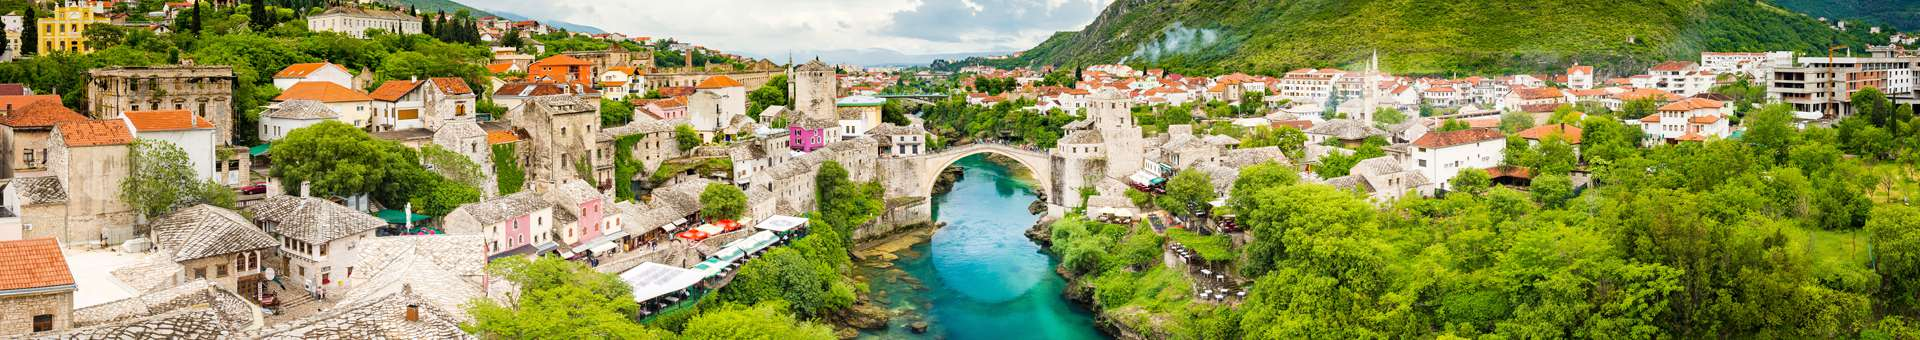 Search Whois information of domain names in Bosnia